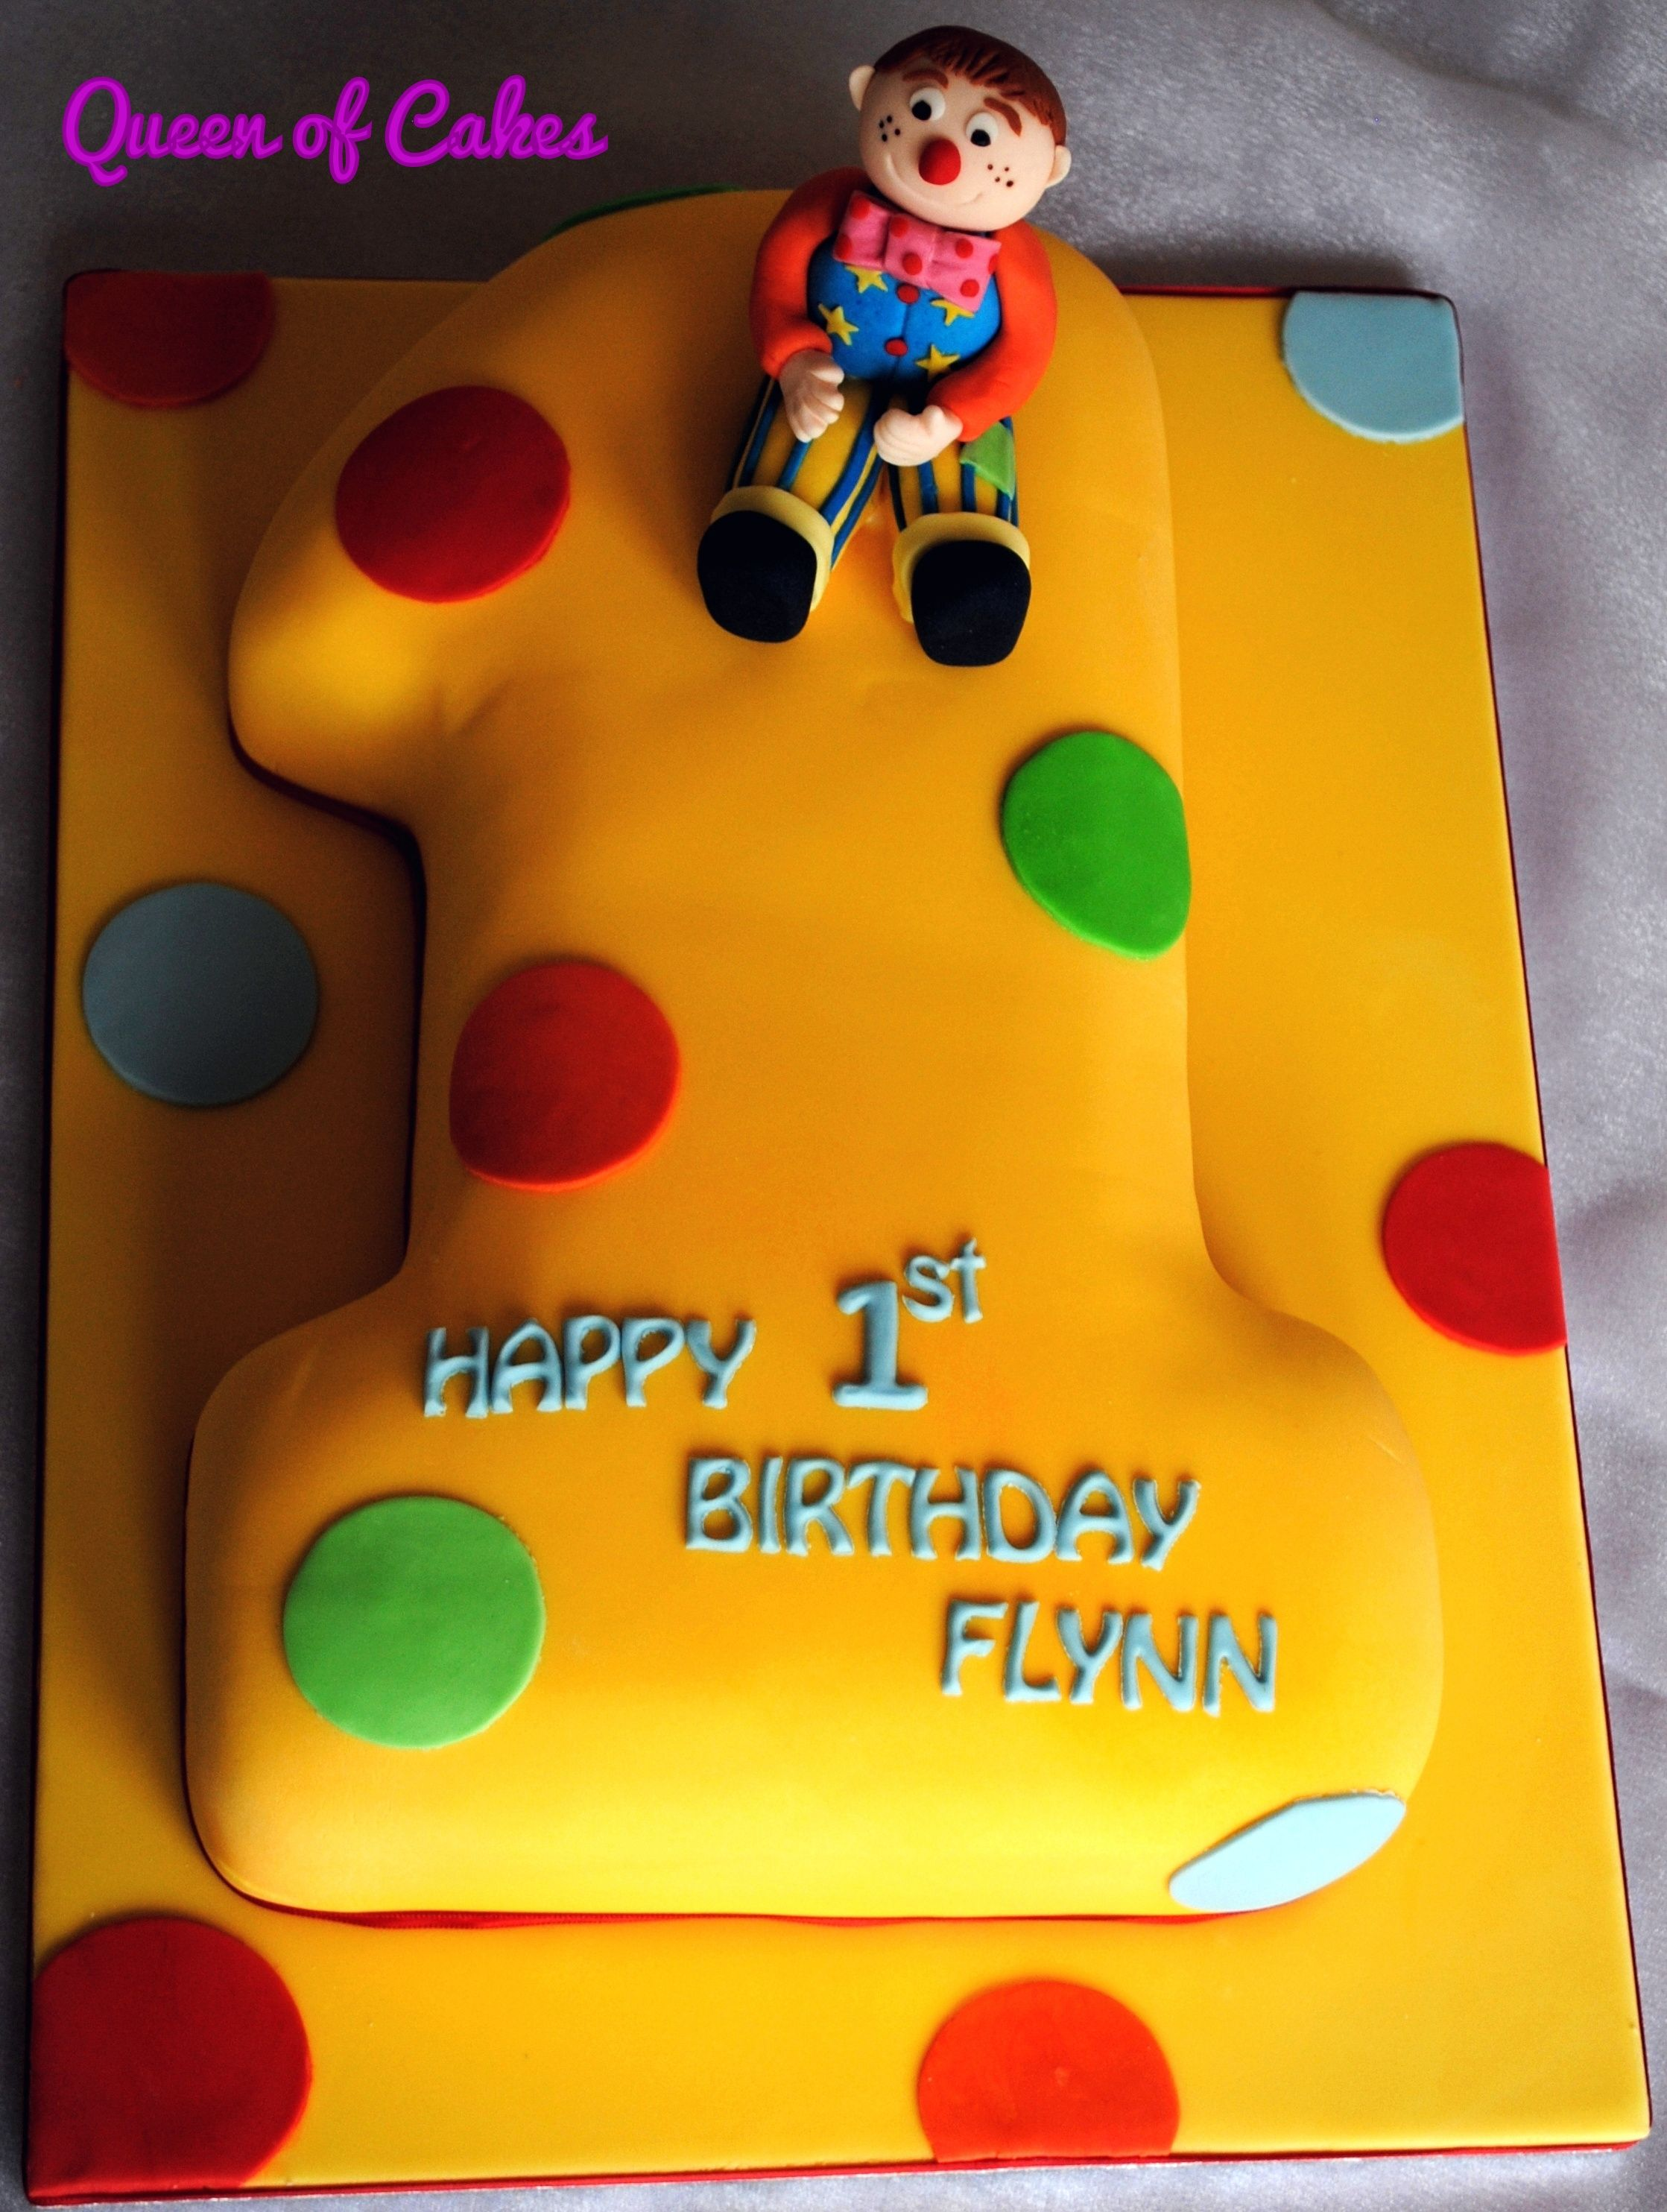 Cbeebies Mr Tumble 1st Birthday Cake By Queen Of Cakes Mr Tumble Birthday Orange Birthday Cake Mr Tumble Birthday Cake